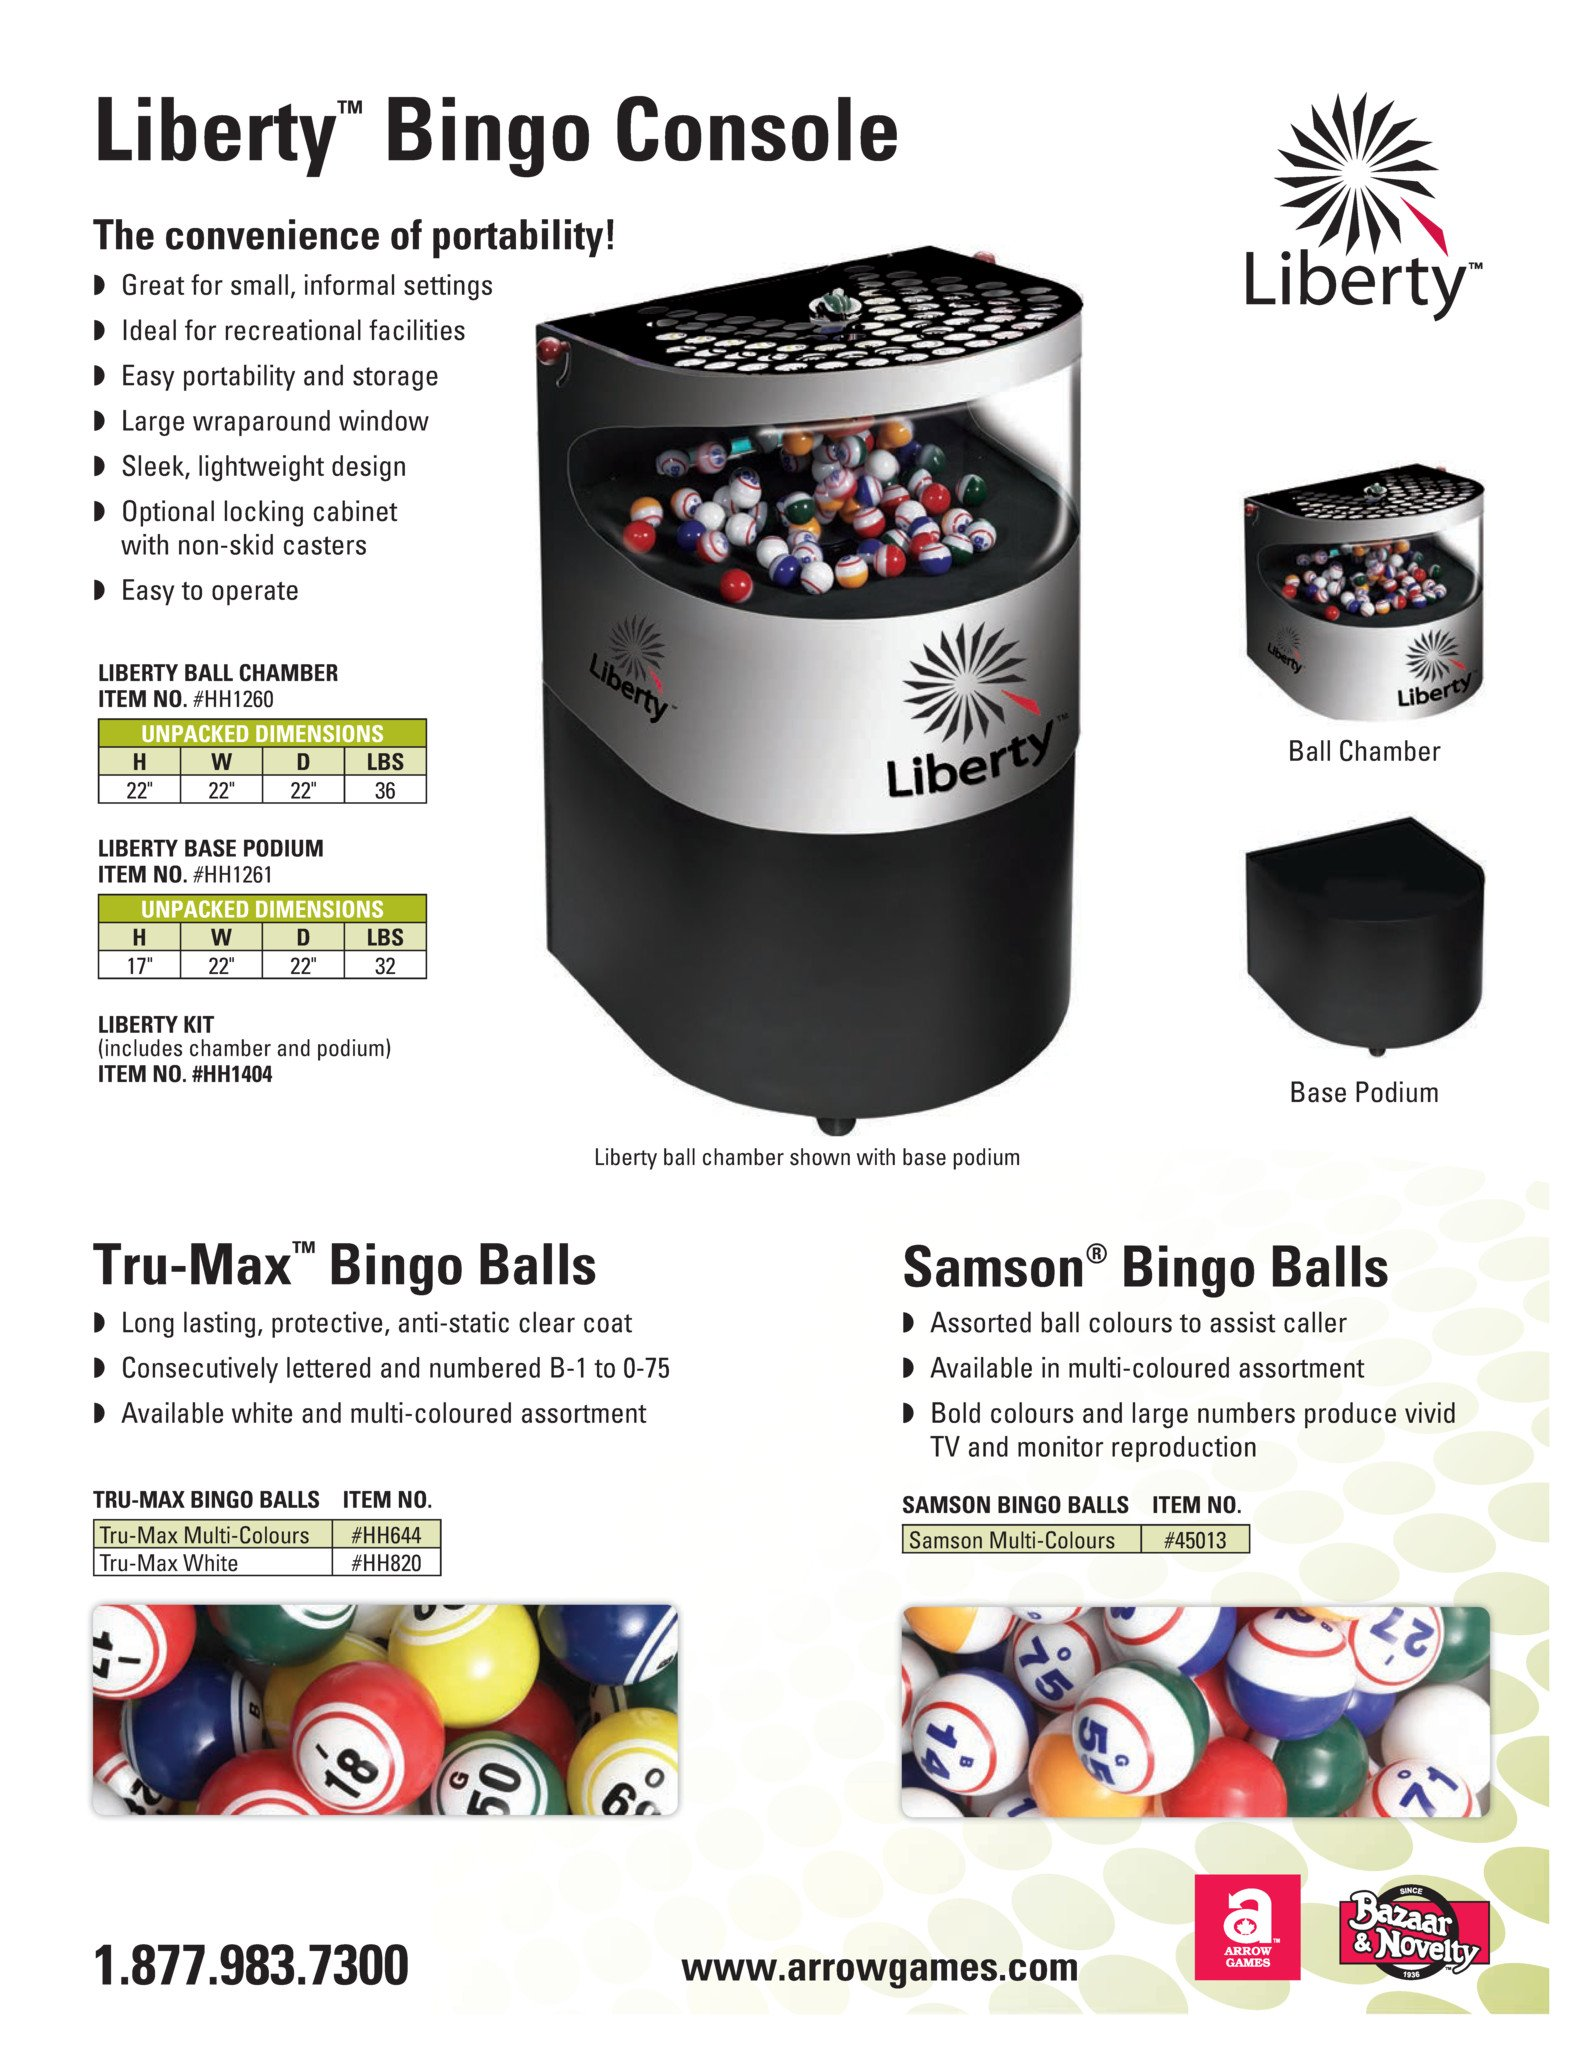 Liberty Bingo Console Flyer Promotional Materials/Equipment Flyers & Brochures